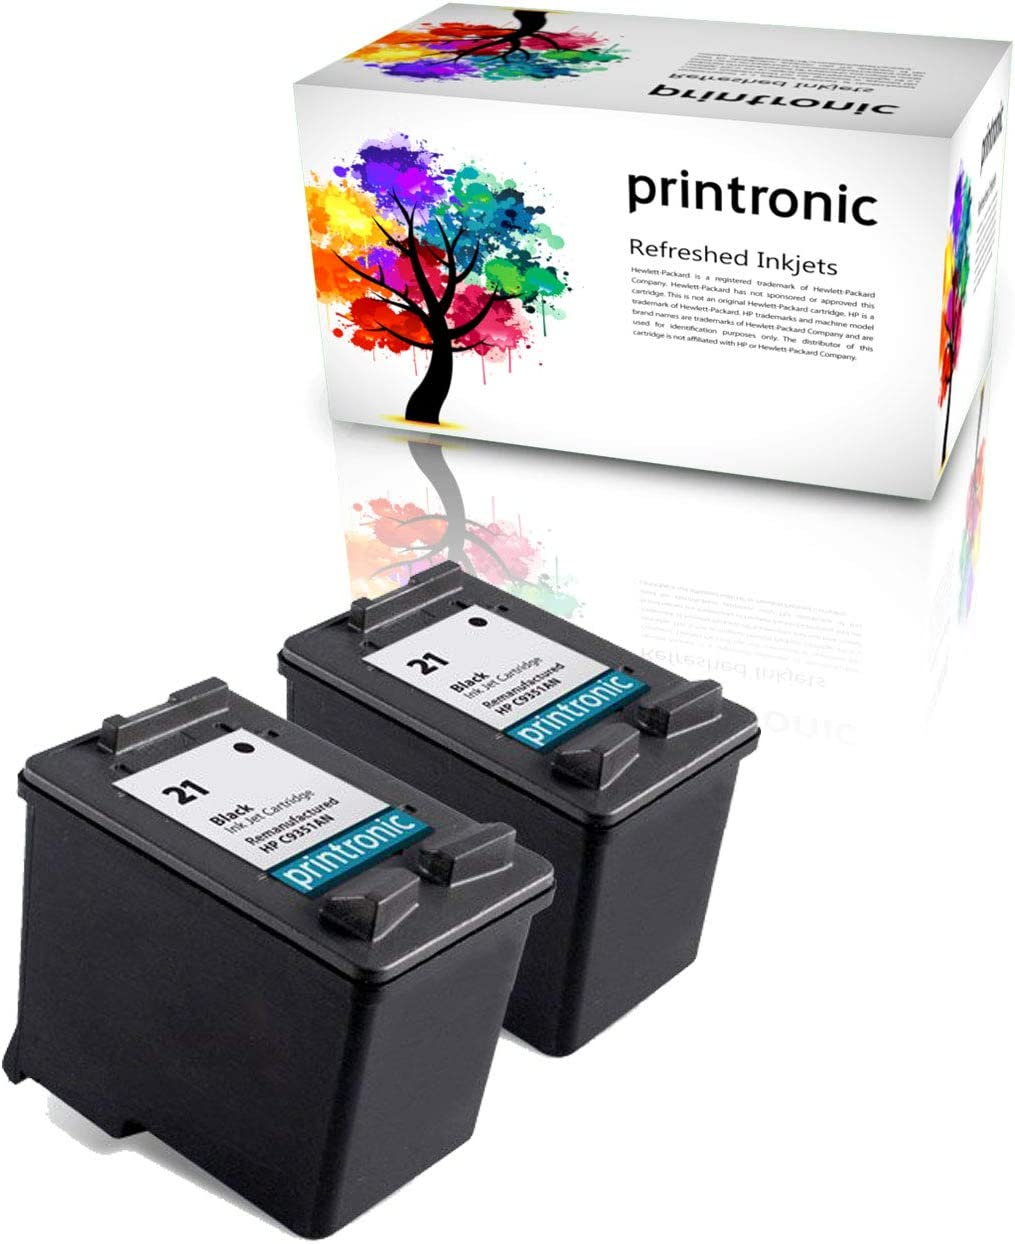 Printronic Remanufactured Ink Cartridge Replacement 2 Pack for HP 21 for PSC 1410 Deskjet F380 F2180 F2280 D1460 F4180 (2 Black)